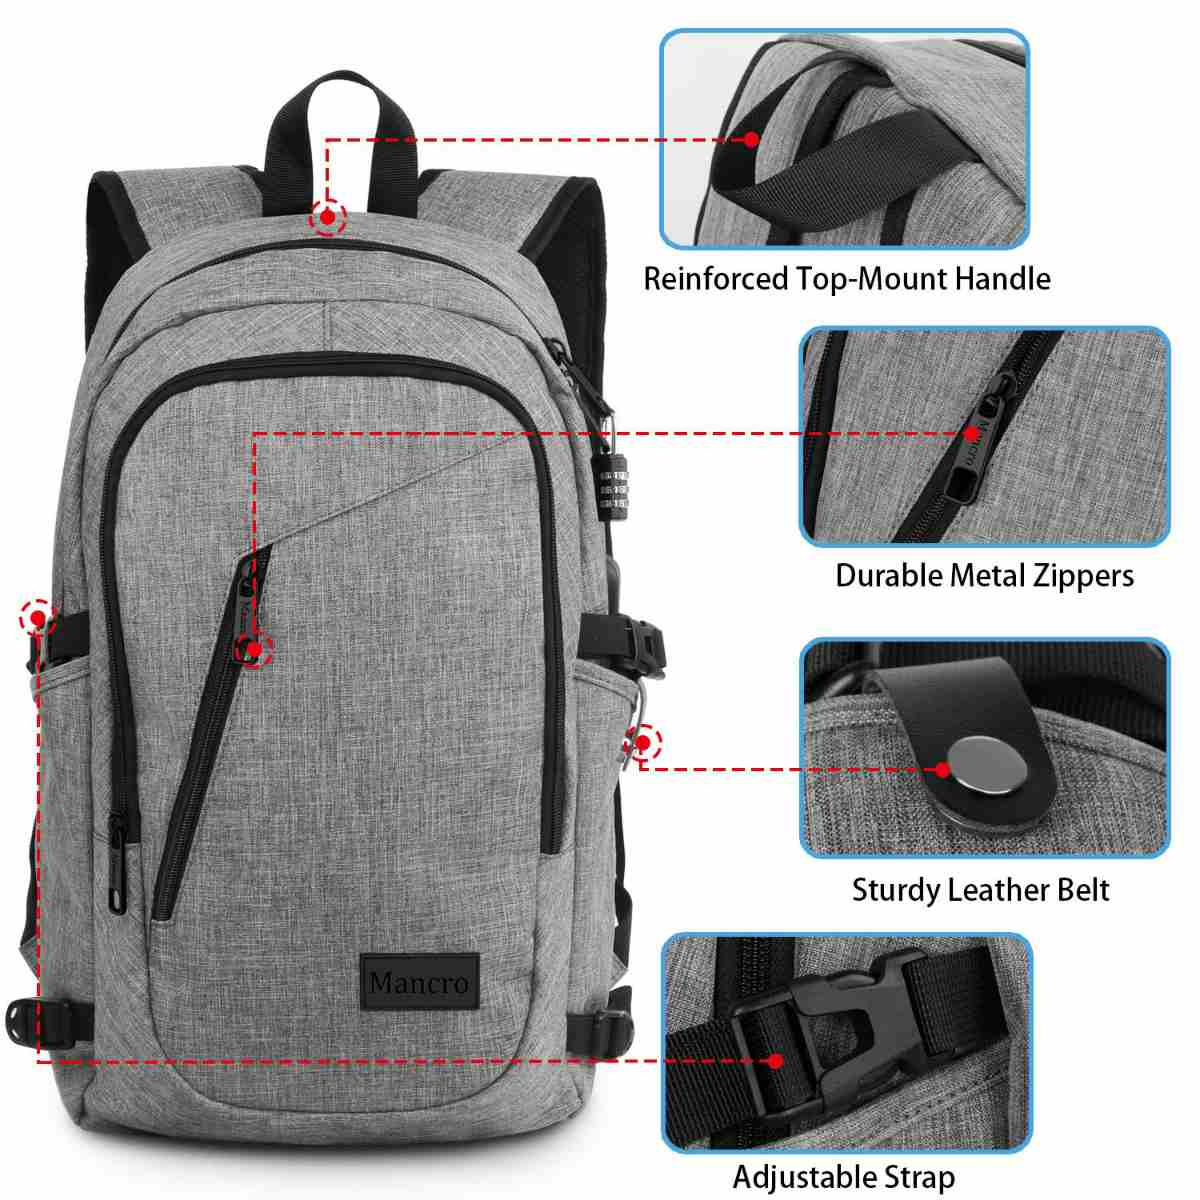 Specifications of the Mancro Charging Backpack | The Mancro Travel Charging Backpack | Amazon Finds